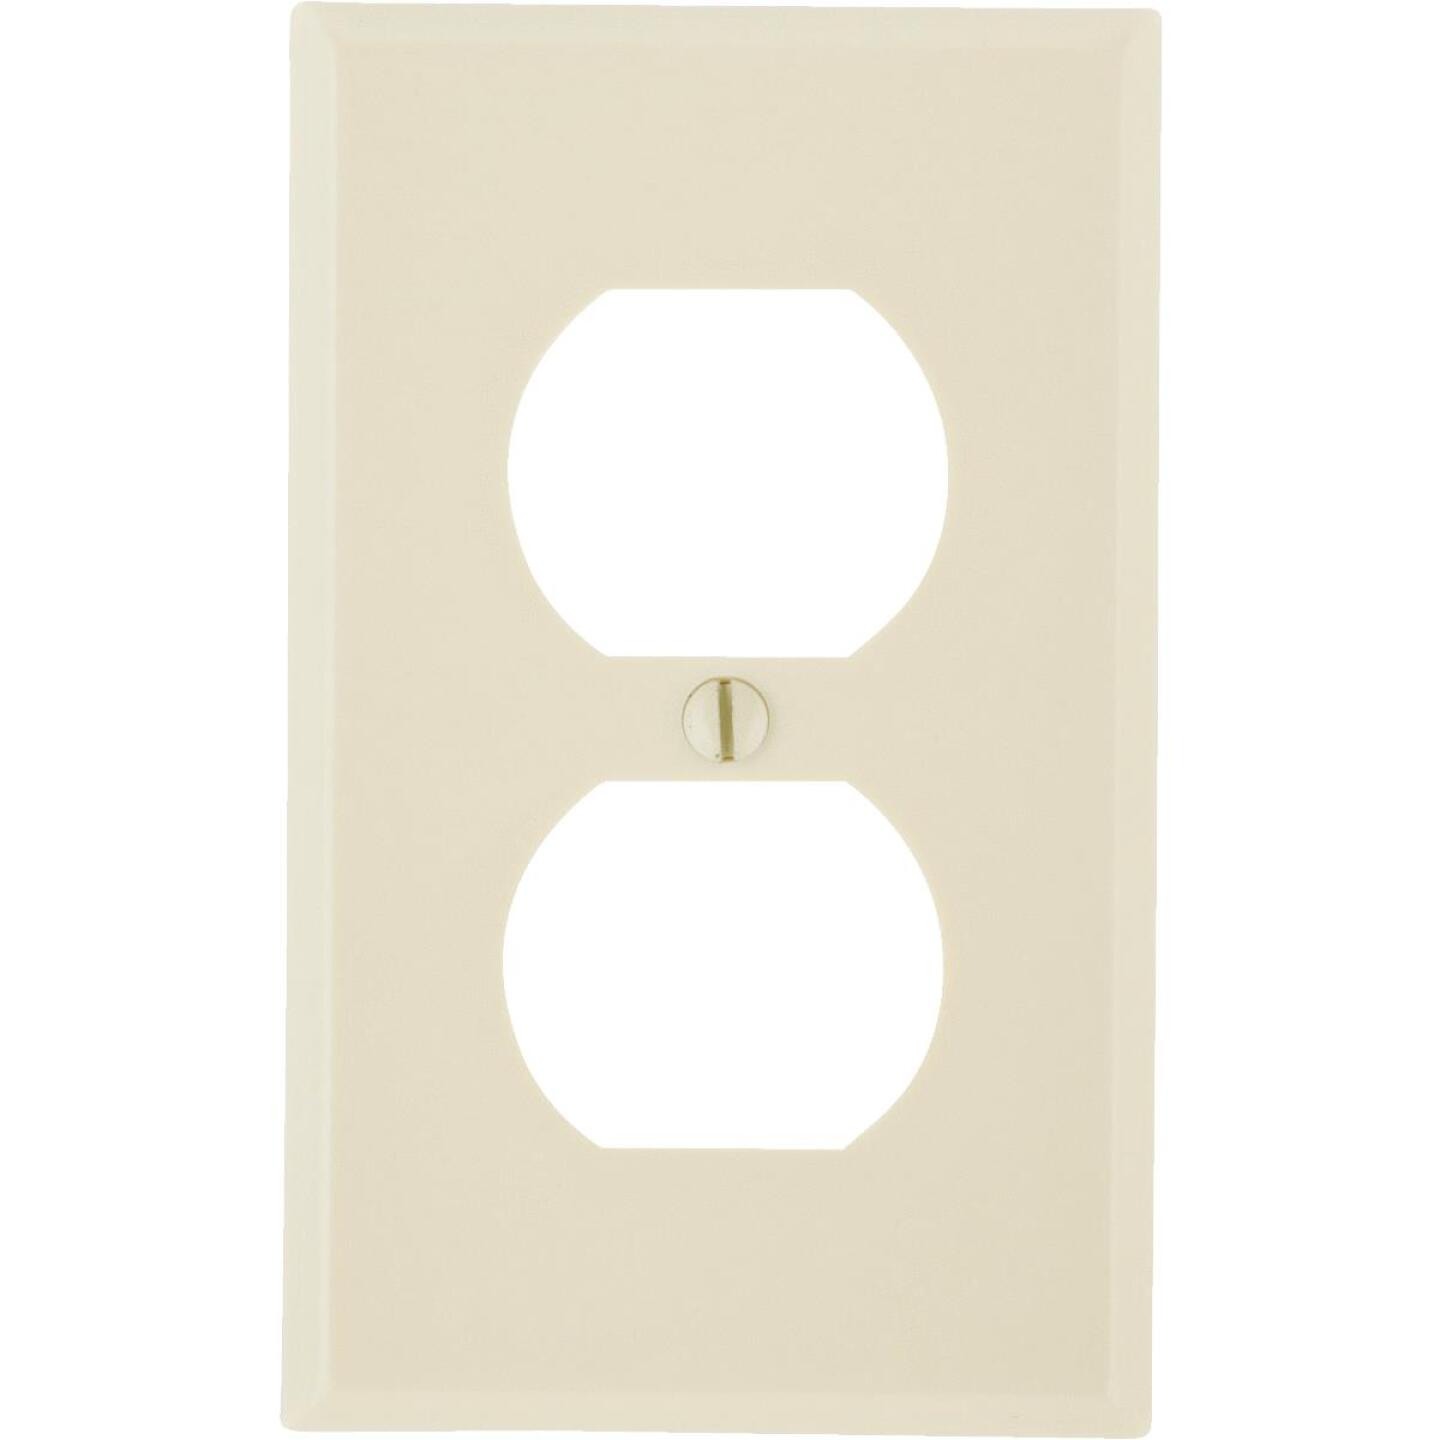 Leviton 1-Gang Smooth Plastic Outlet Wall Plate, Ivory Image 1